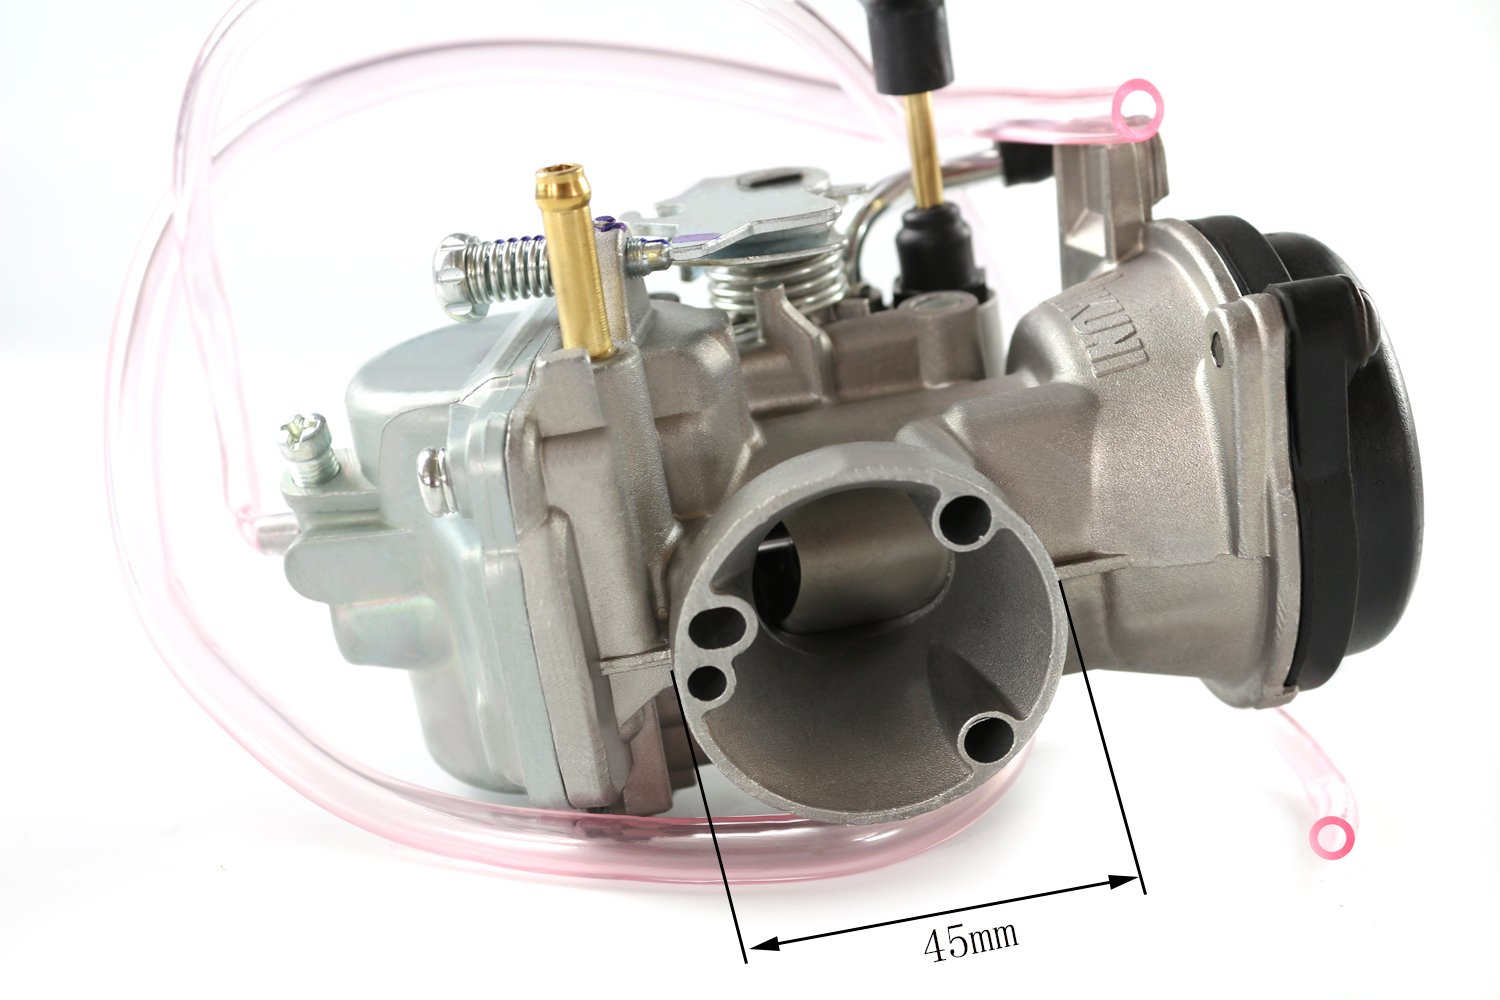 26mm Intake Carburetor Carb EN125 Engine 125CC 45mm Air Filter Third Generation